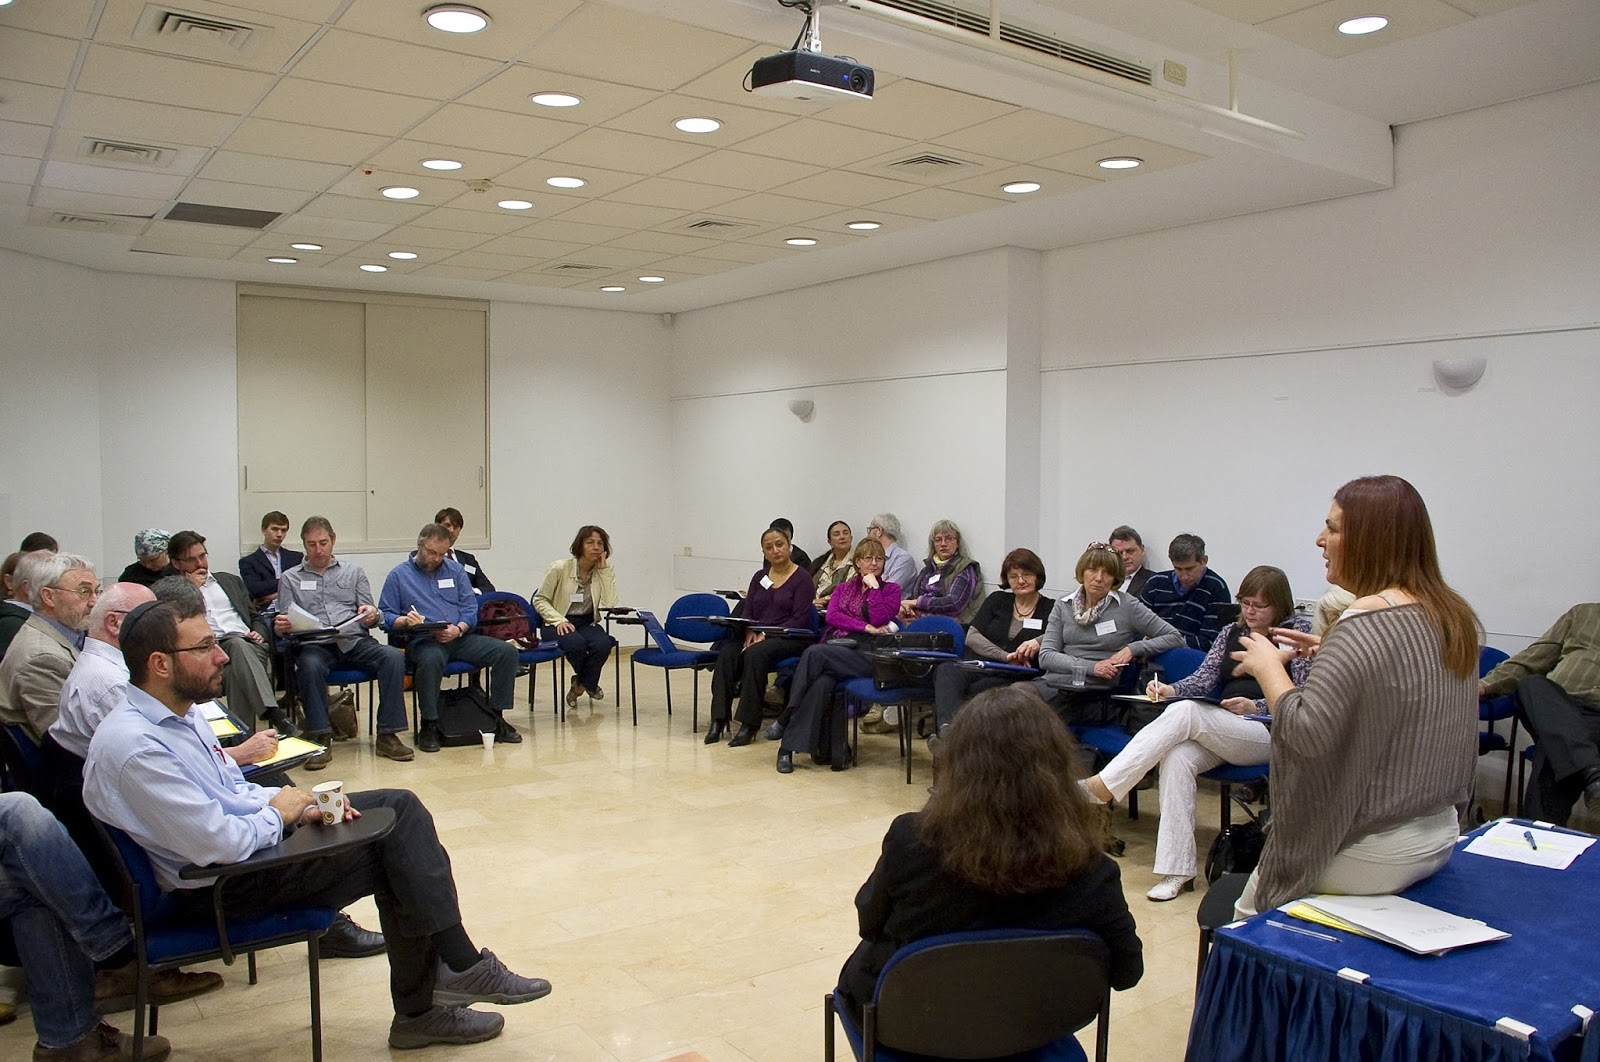 Participants in professional seminars at Yad Vashem's International School for Holocaust Studies